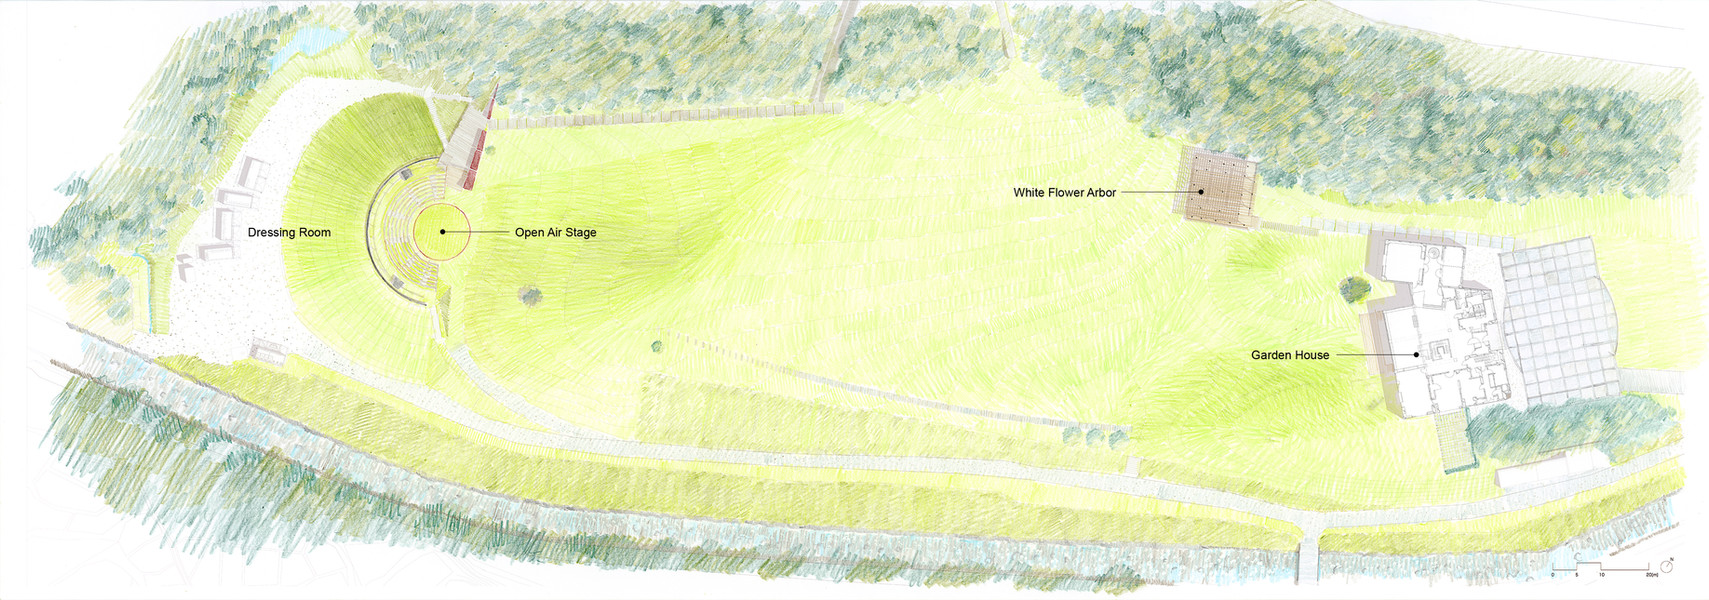 Site plan with caption.jpg